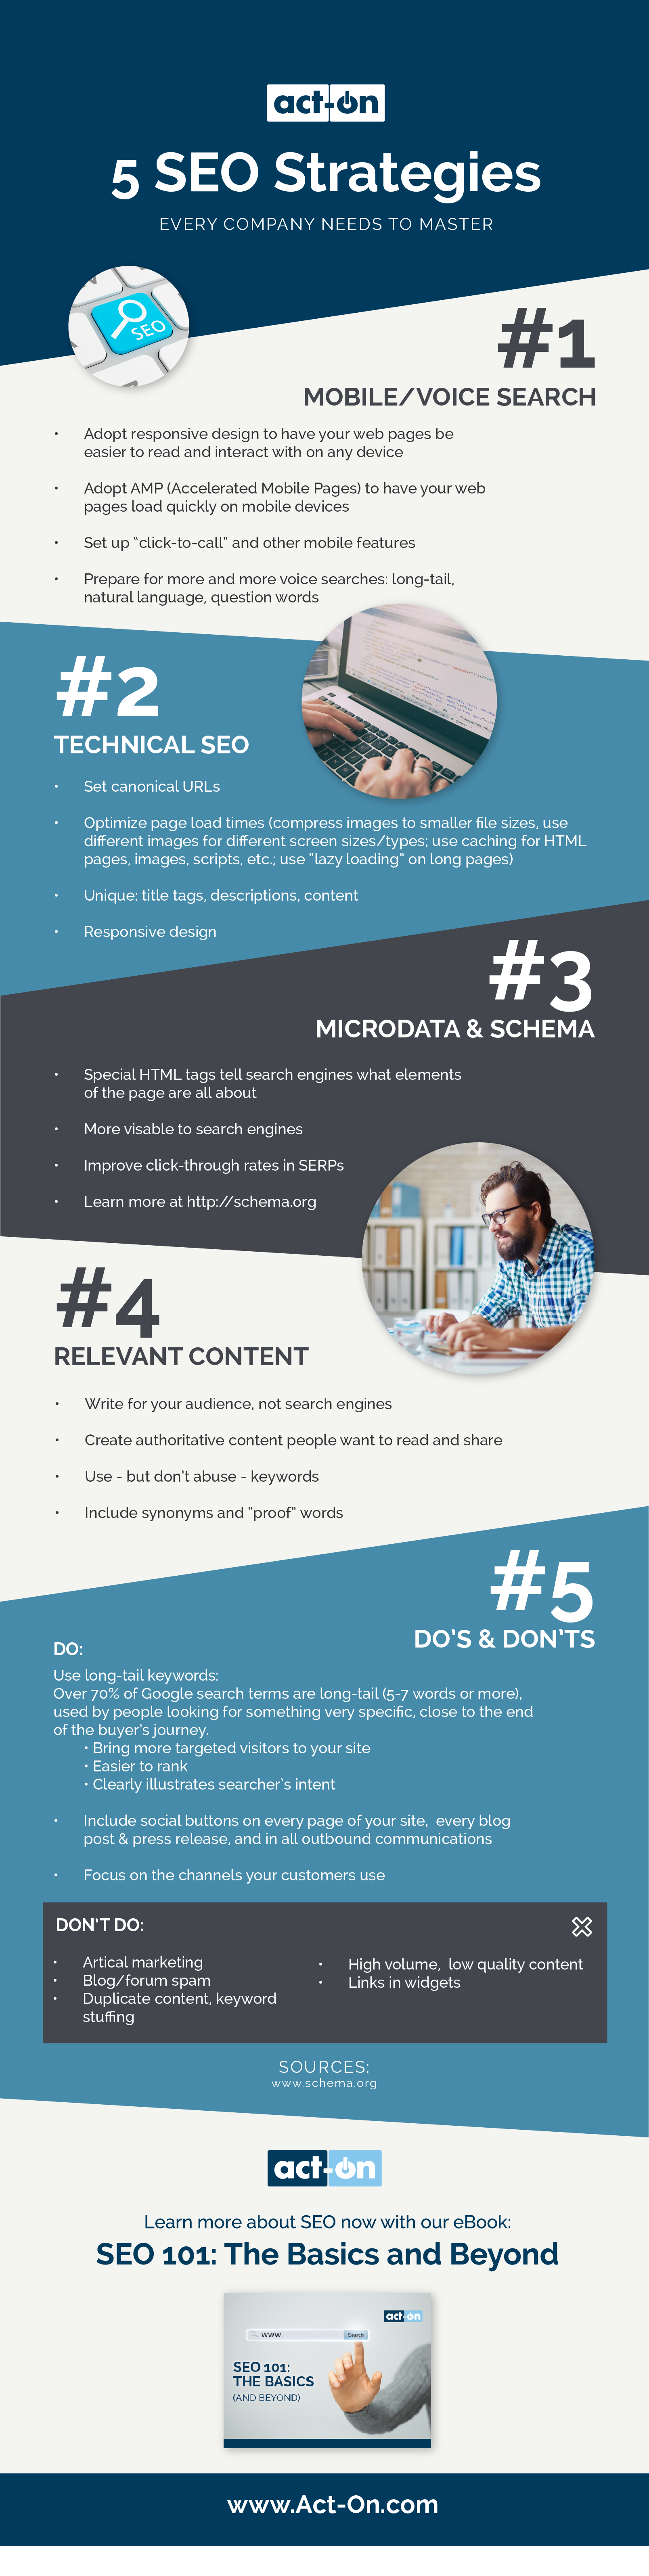 SEO strategies infographic